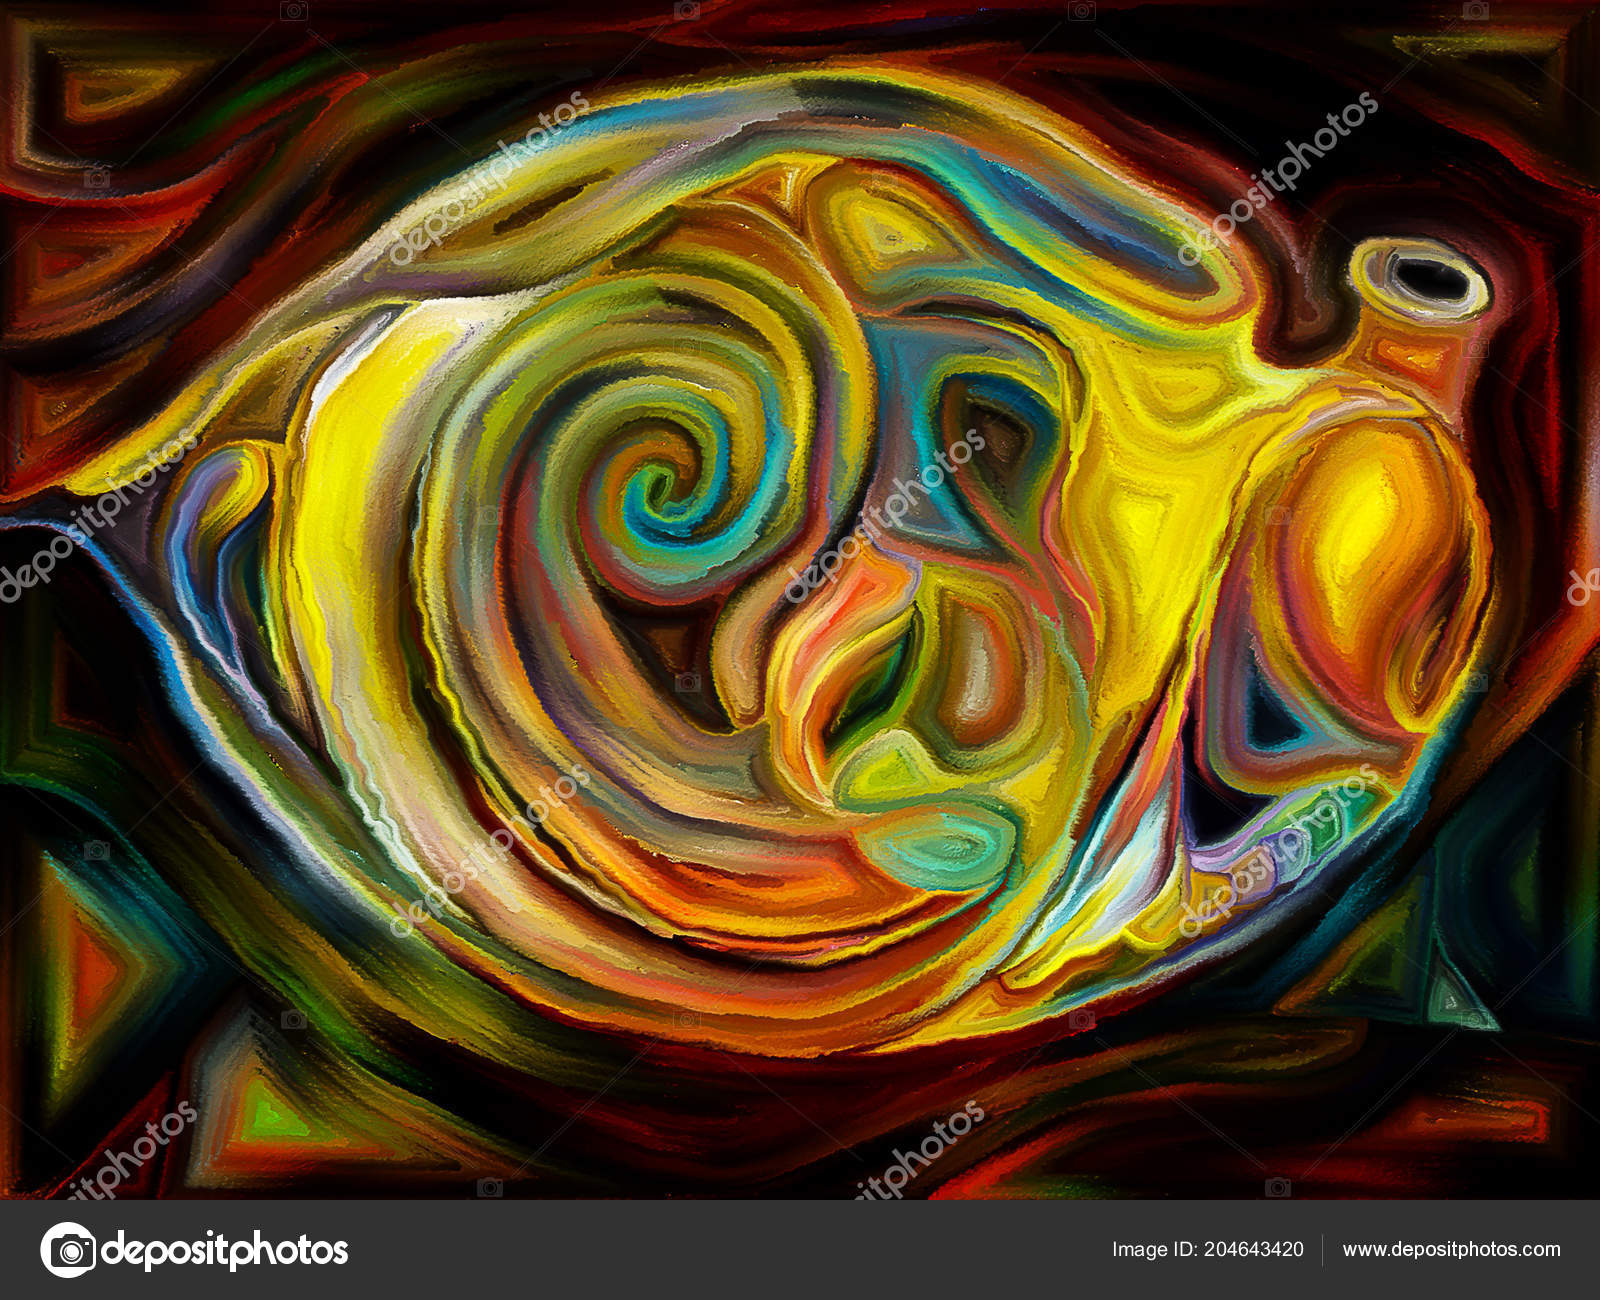 Is There Subject In Abstract Art